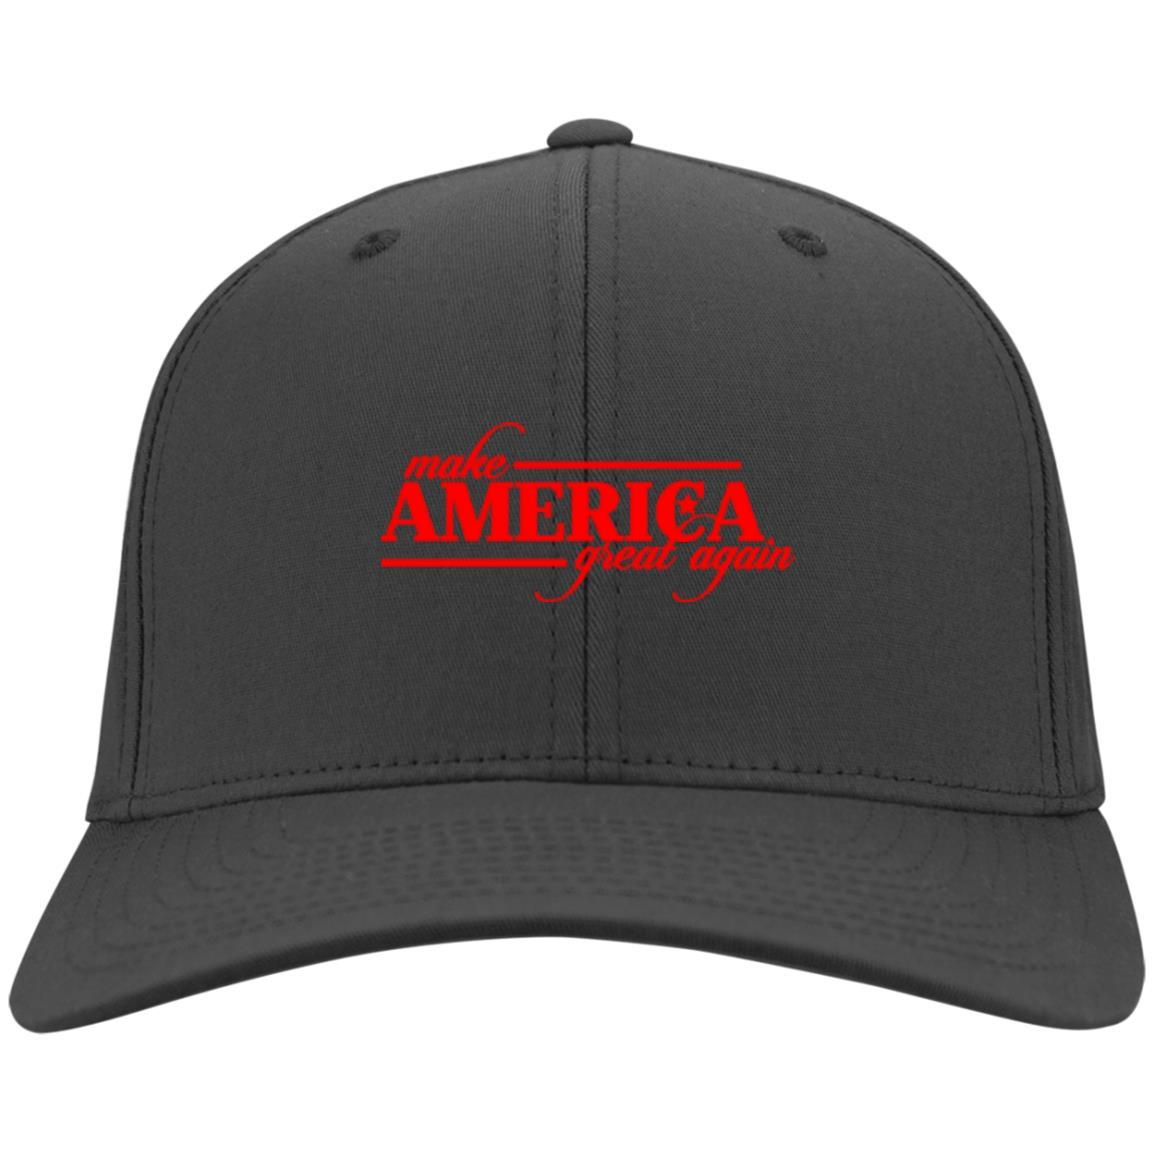 Make America Great Again - Port & Co. Twill Cap Charcoal